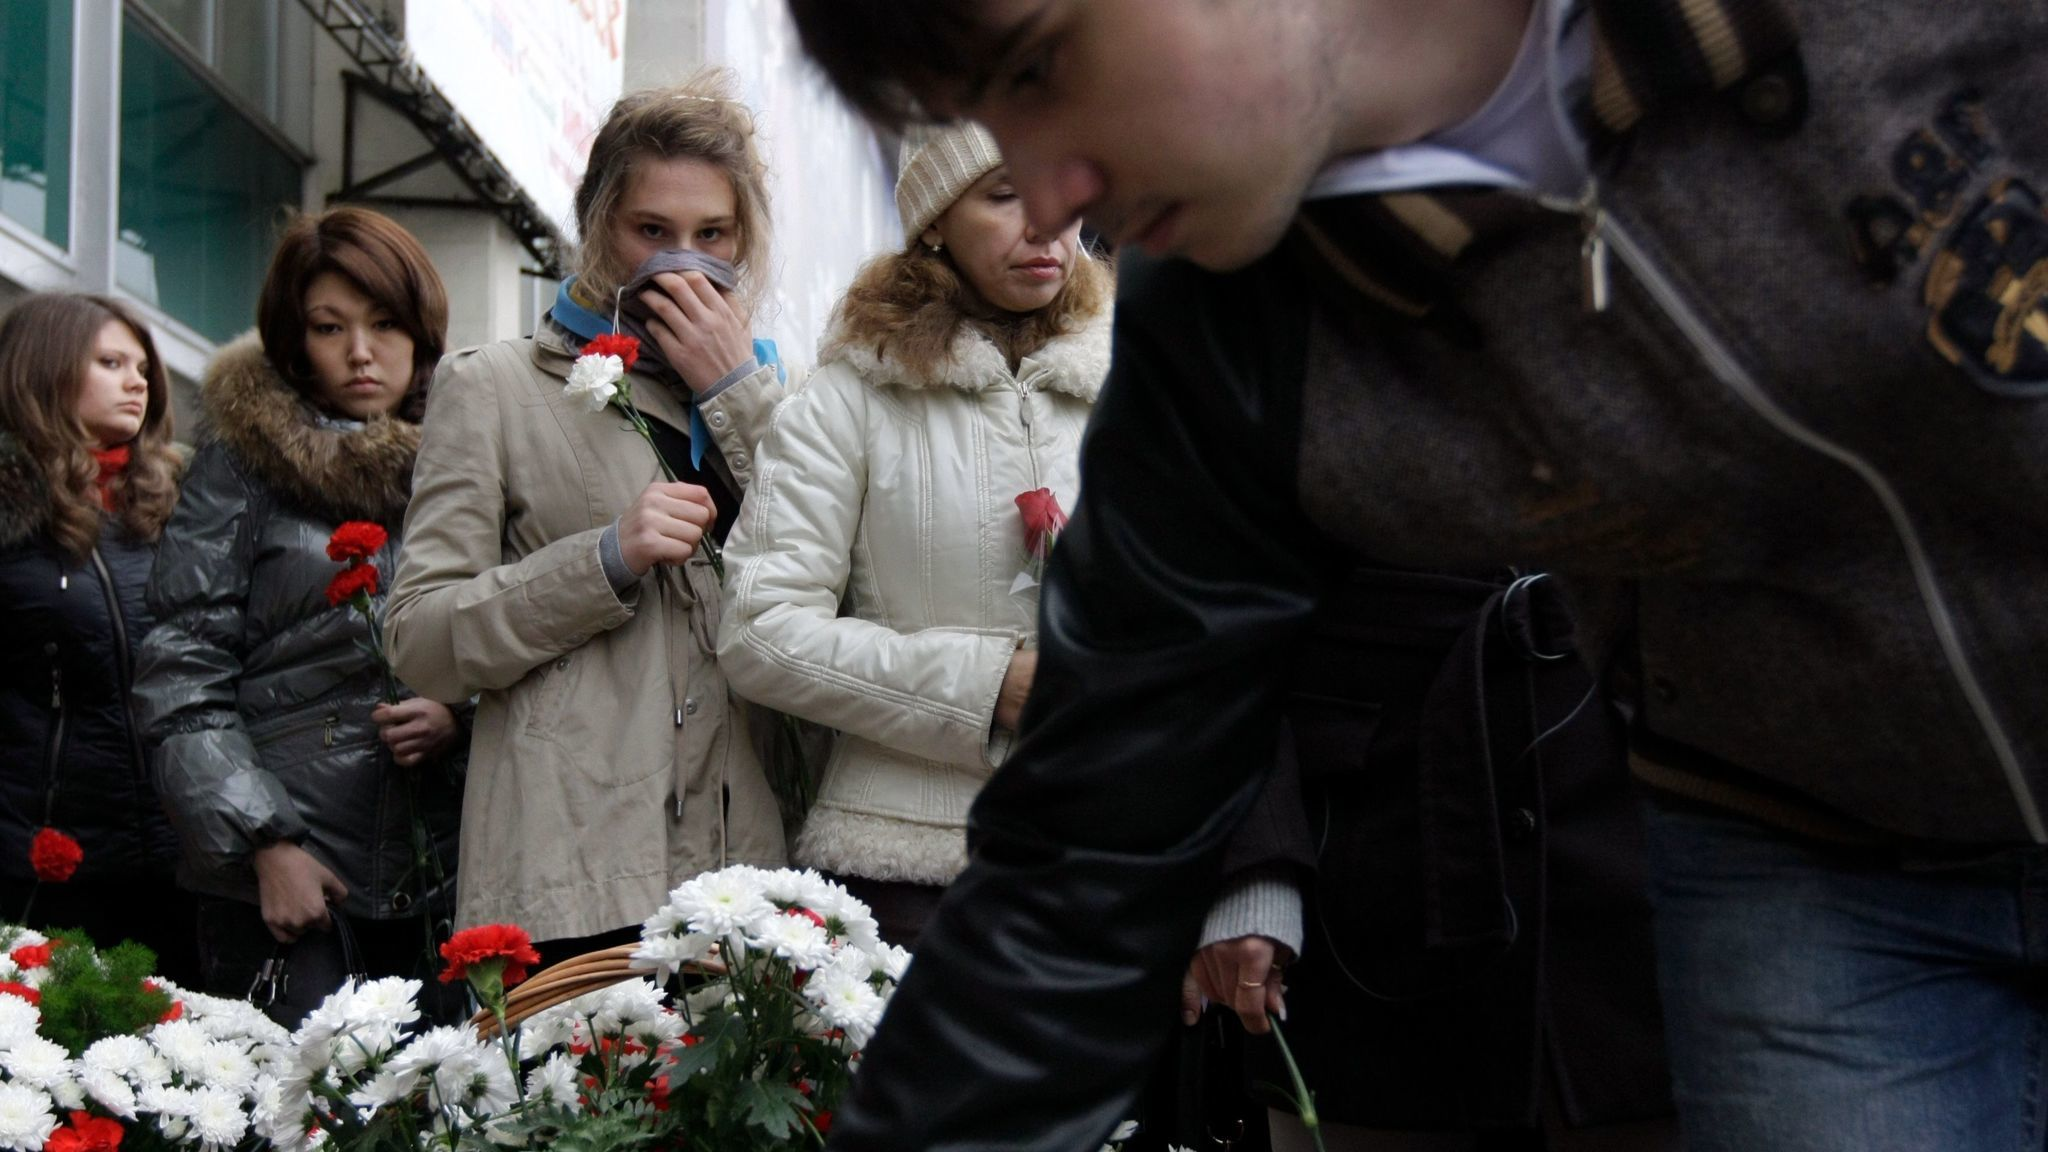 People lay flowers outside the Moscow theater that Chechen gunmen seized in 2002. Relatives of the slain hostages mark the tragedy's seventh anniversary Oct. 26, 2009.